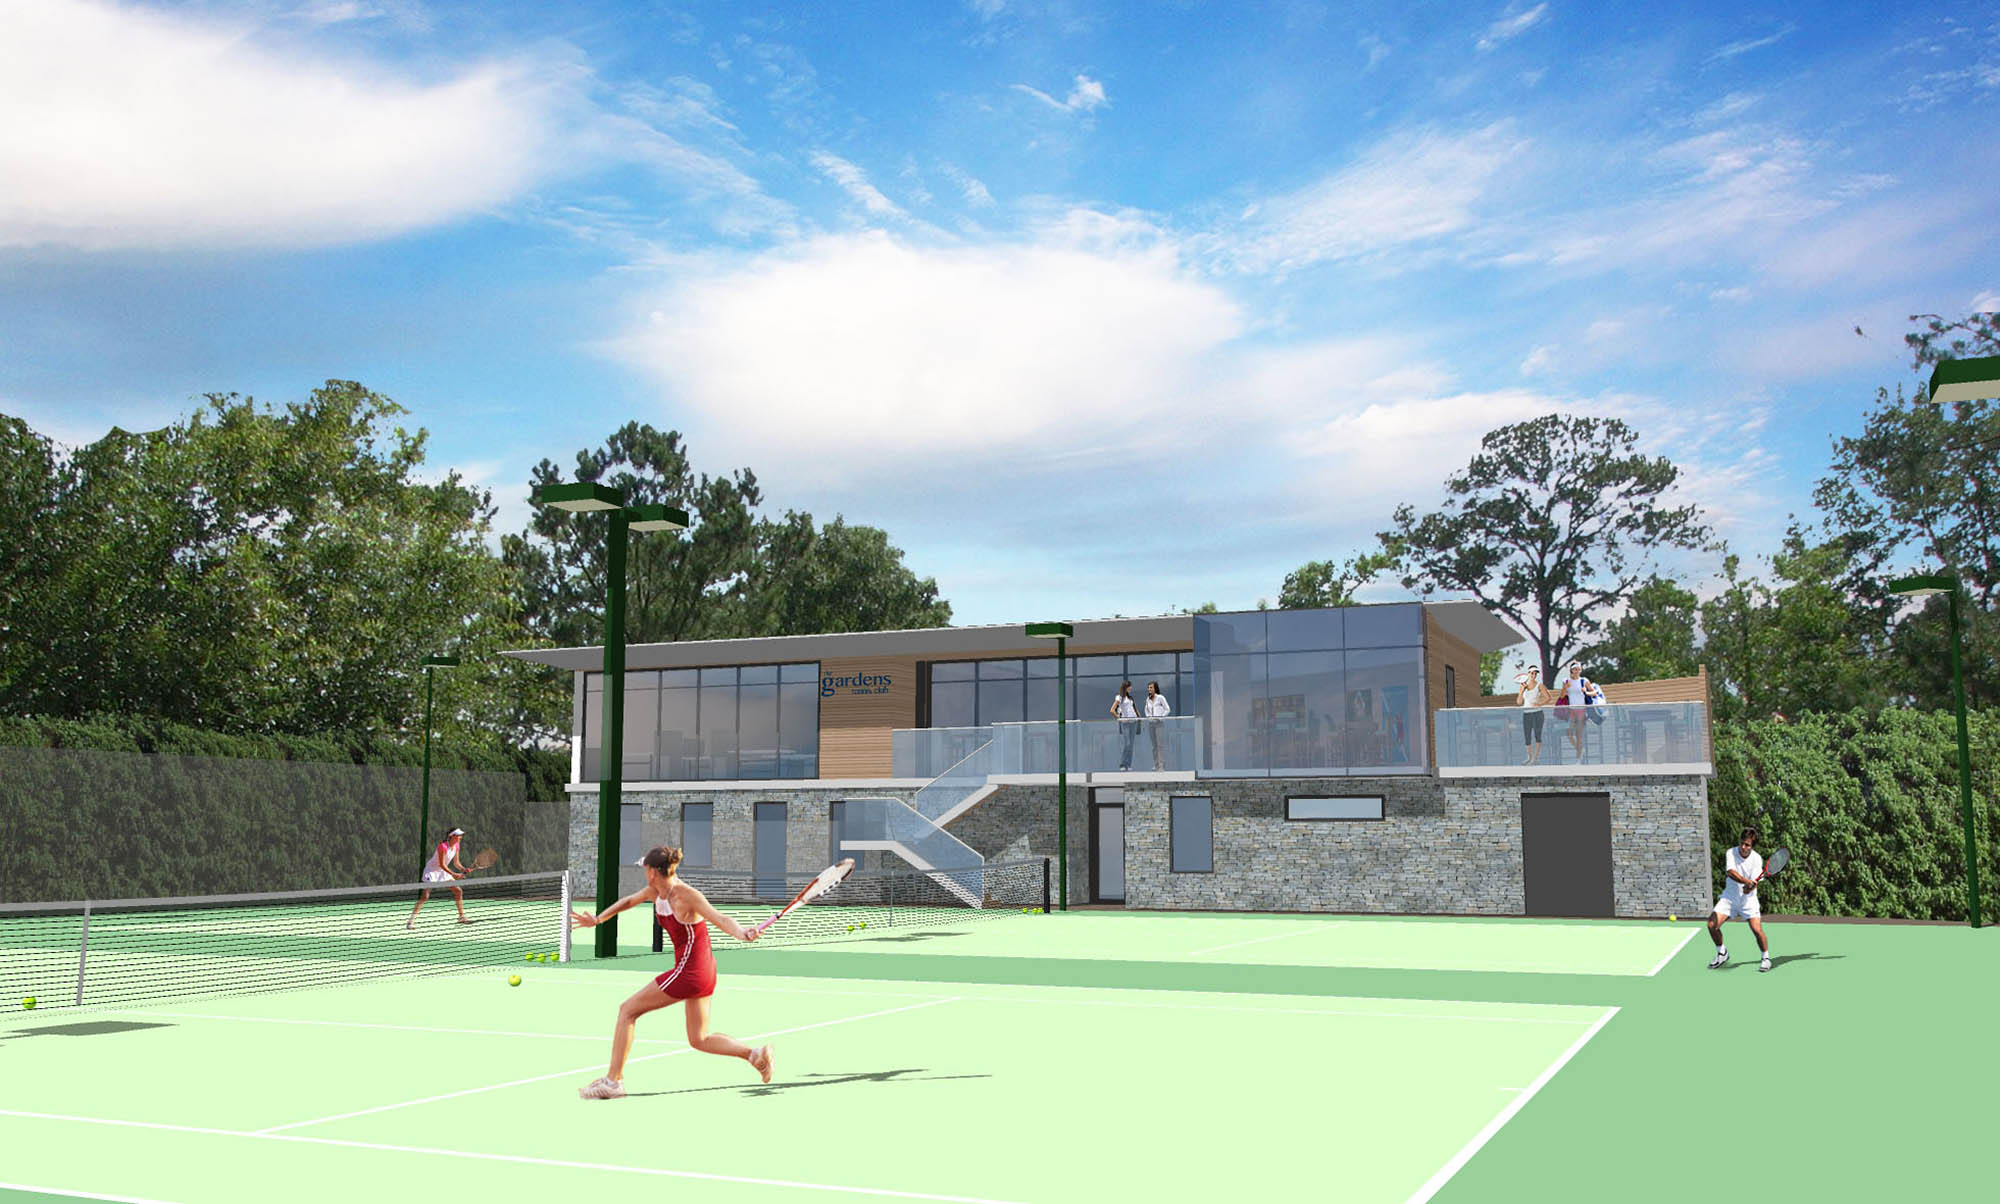 Architect's impression of view of the new pavilion for The Gardens Tennis Club view from the courts